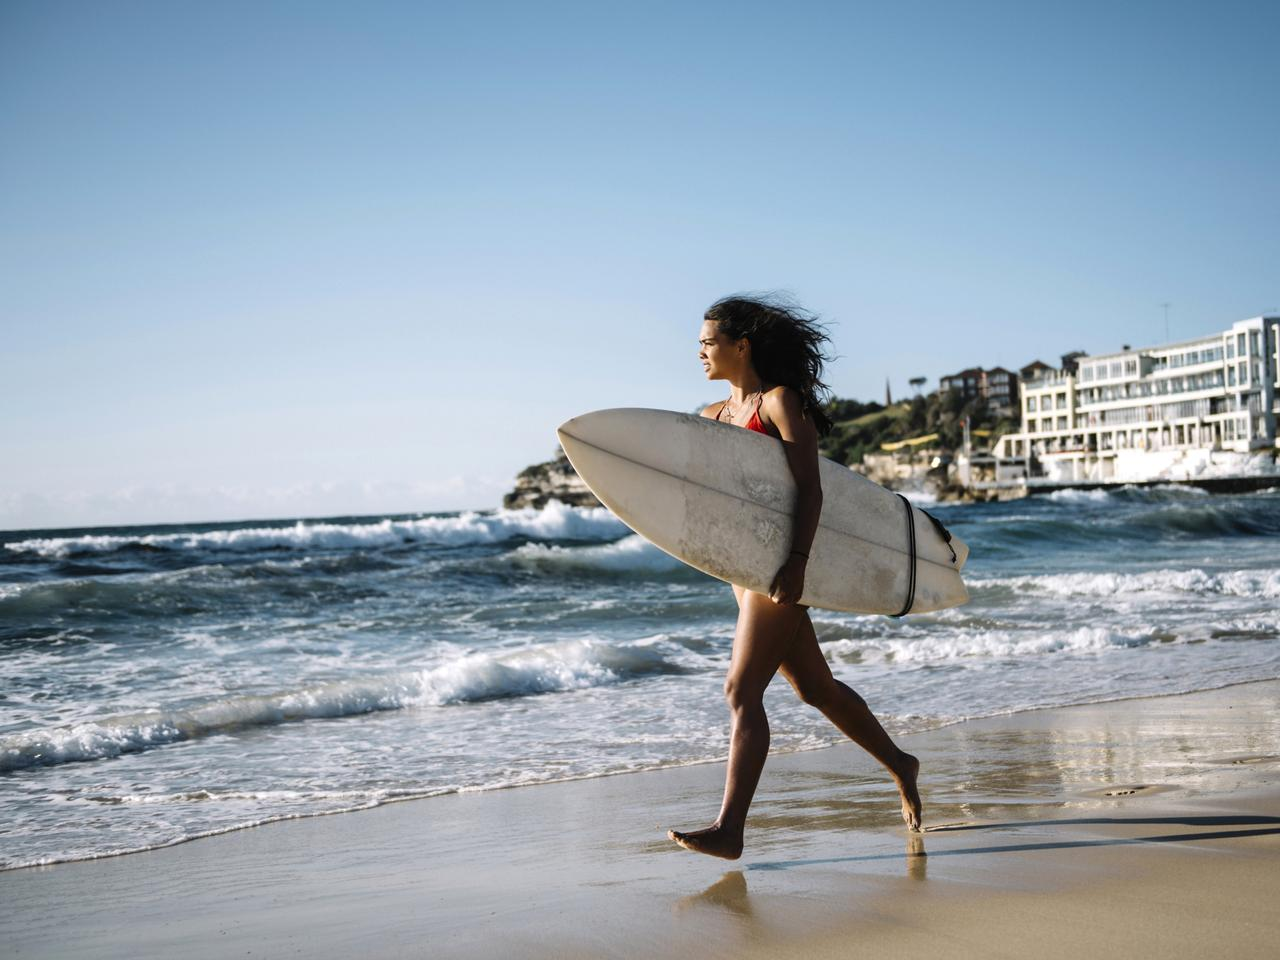 Young woman going for a surf